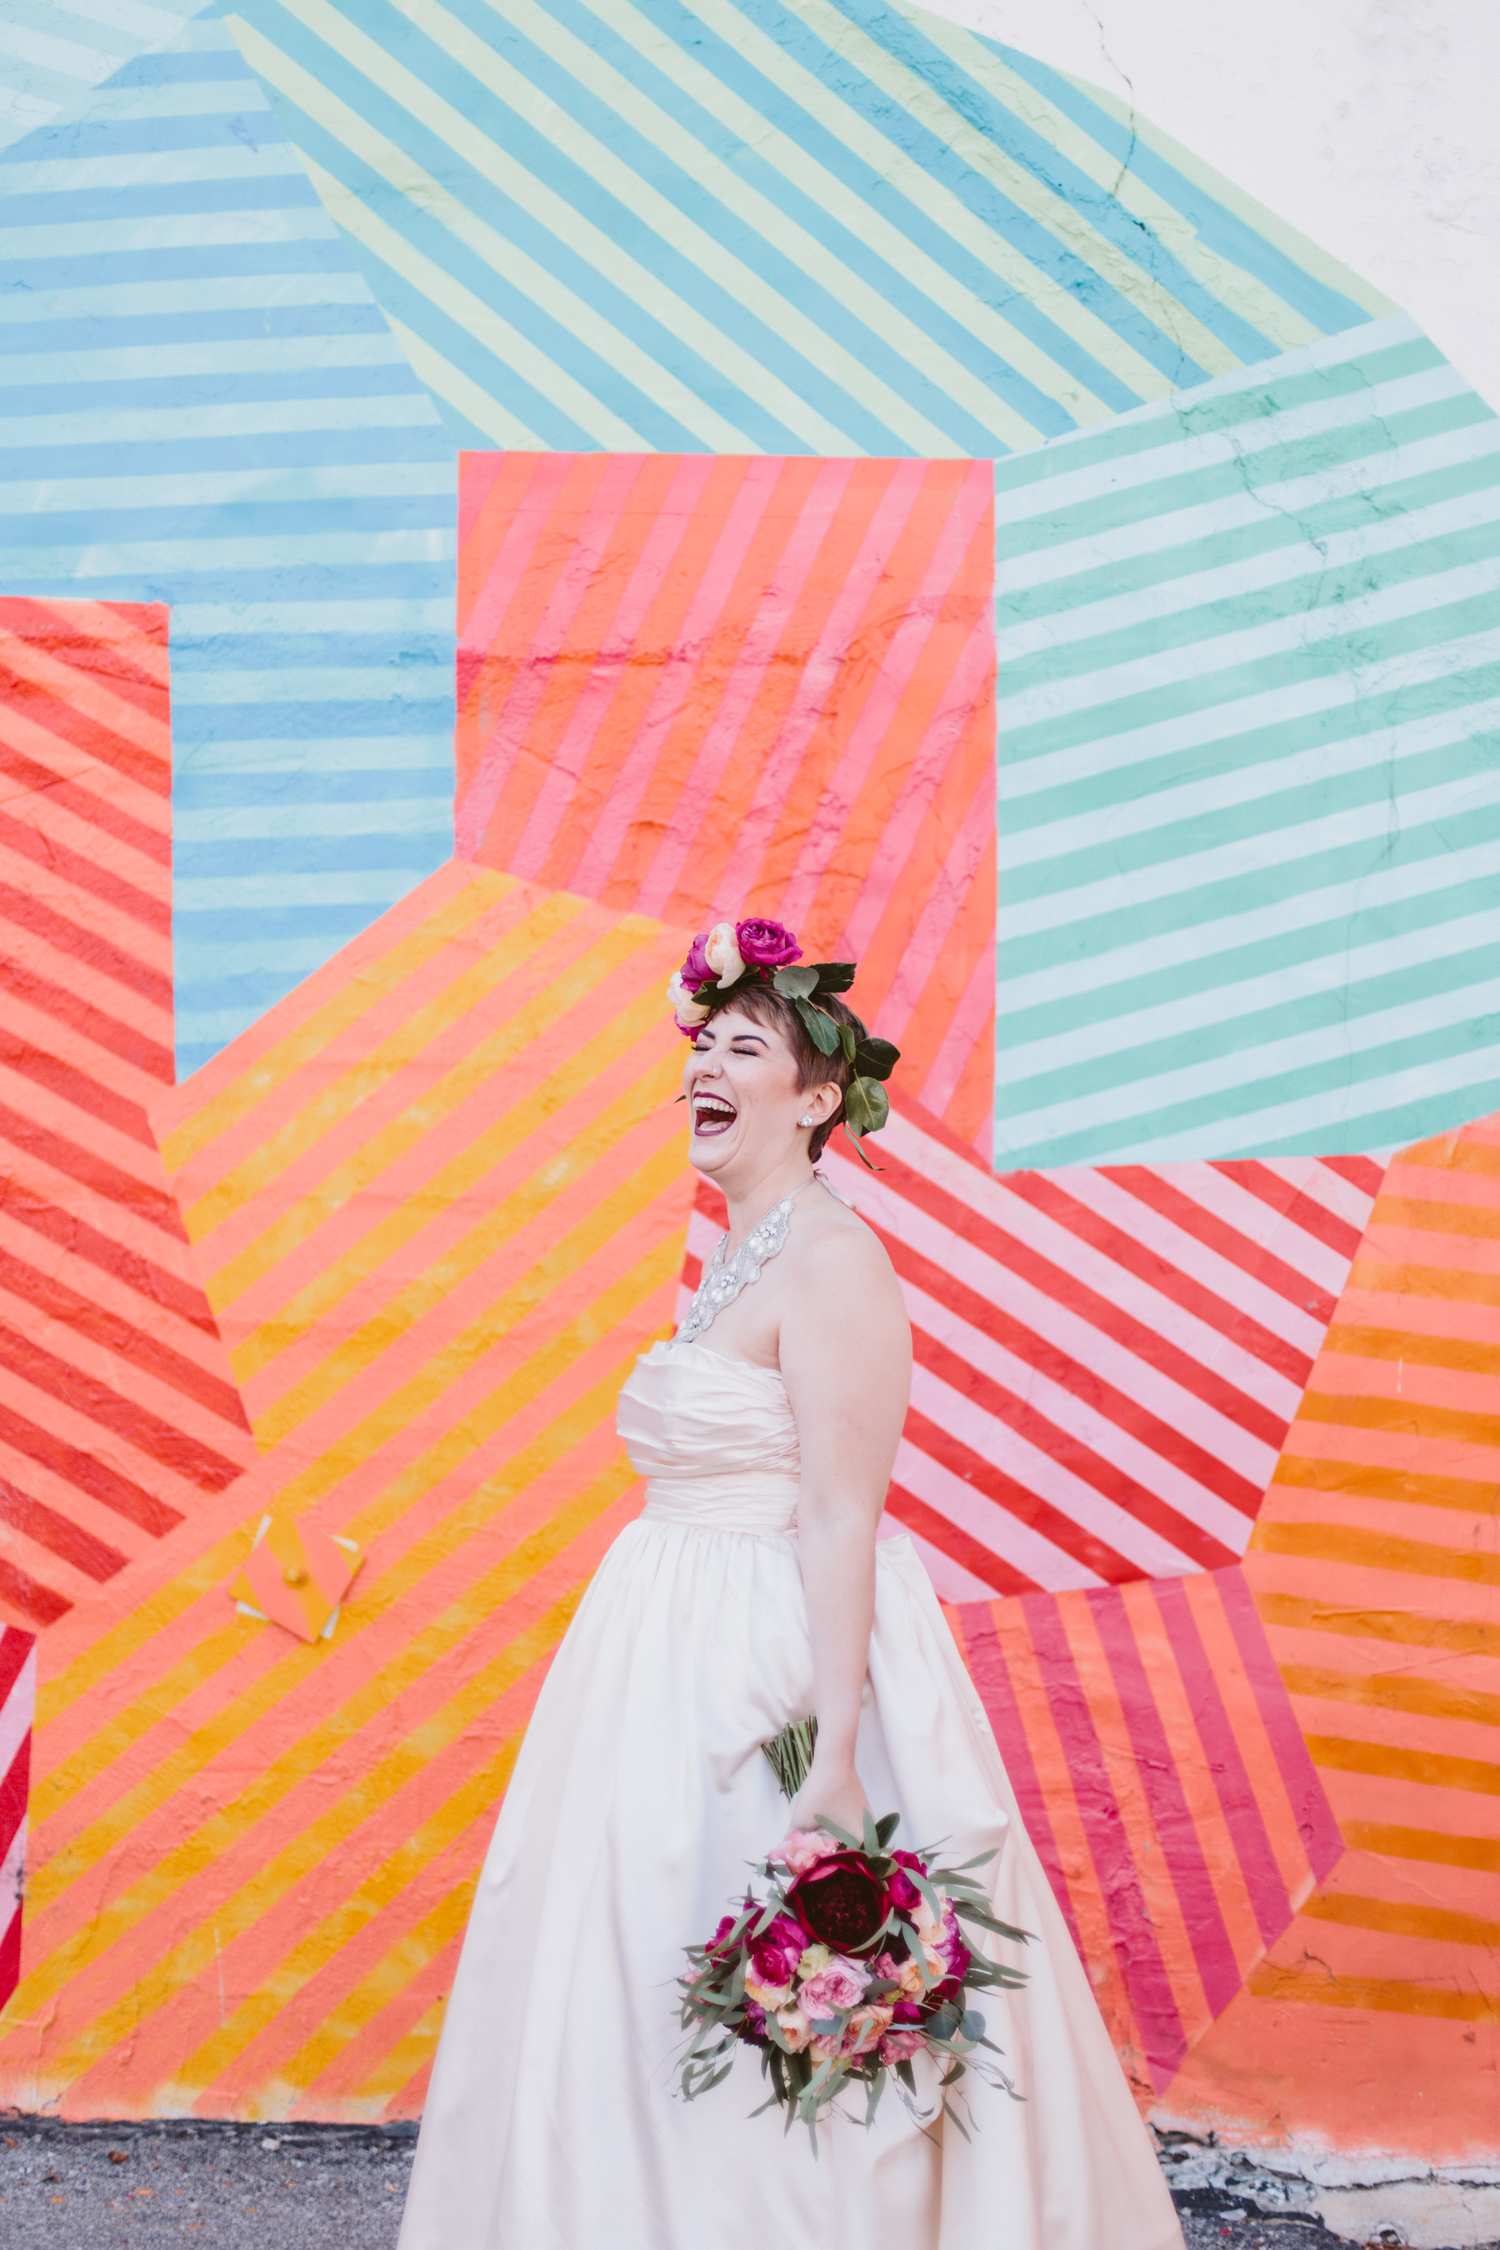 Wooly's Des Moines Wedding Photographer-29.jpg